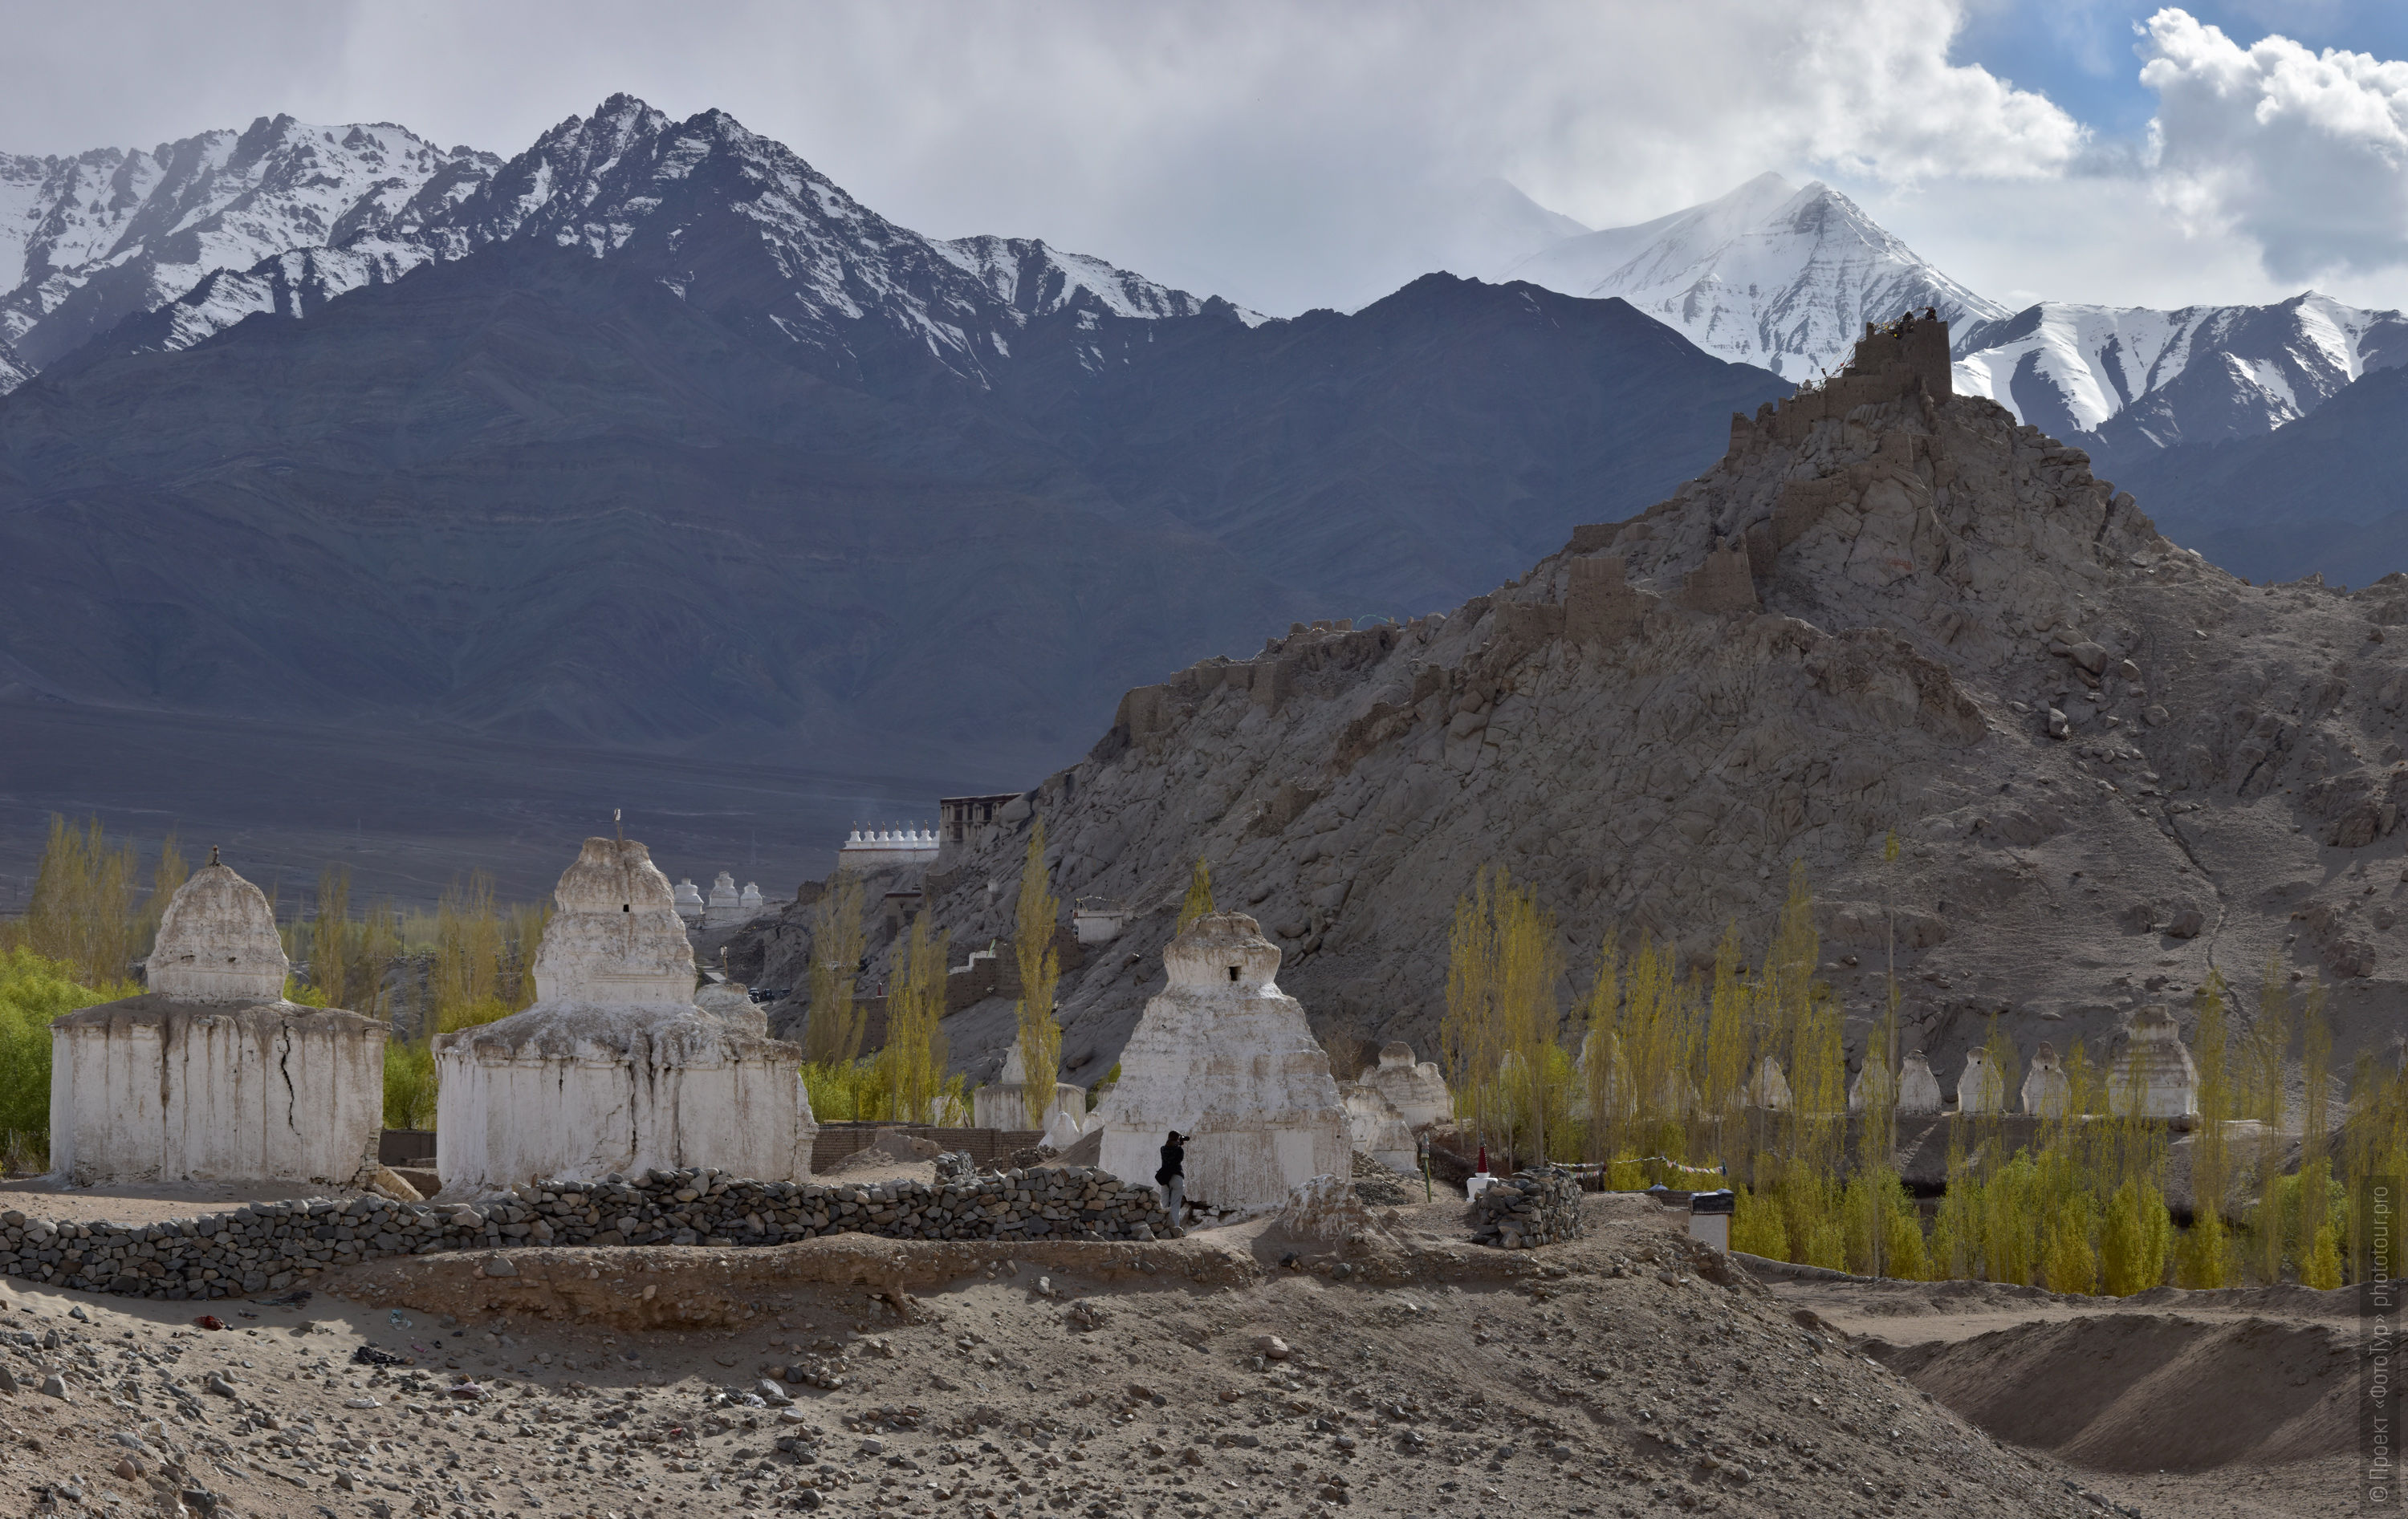 The monastery of Shay Gonpa. Tour for artists in Tibet: Watercolor-1: Watercolor painting in Ladakh with Pavel Pugachev, 04.08. - 13.08. 2019.